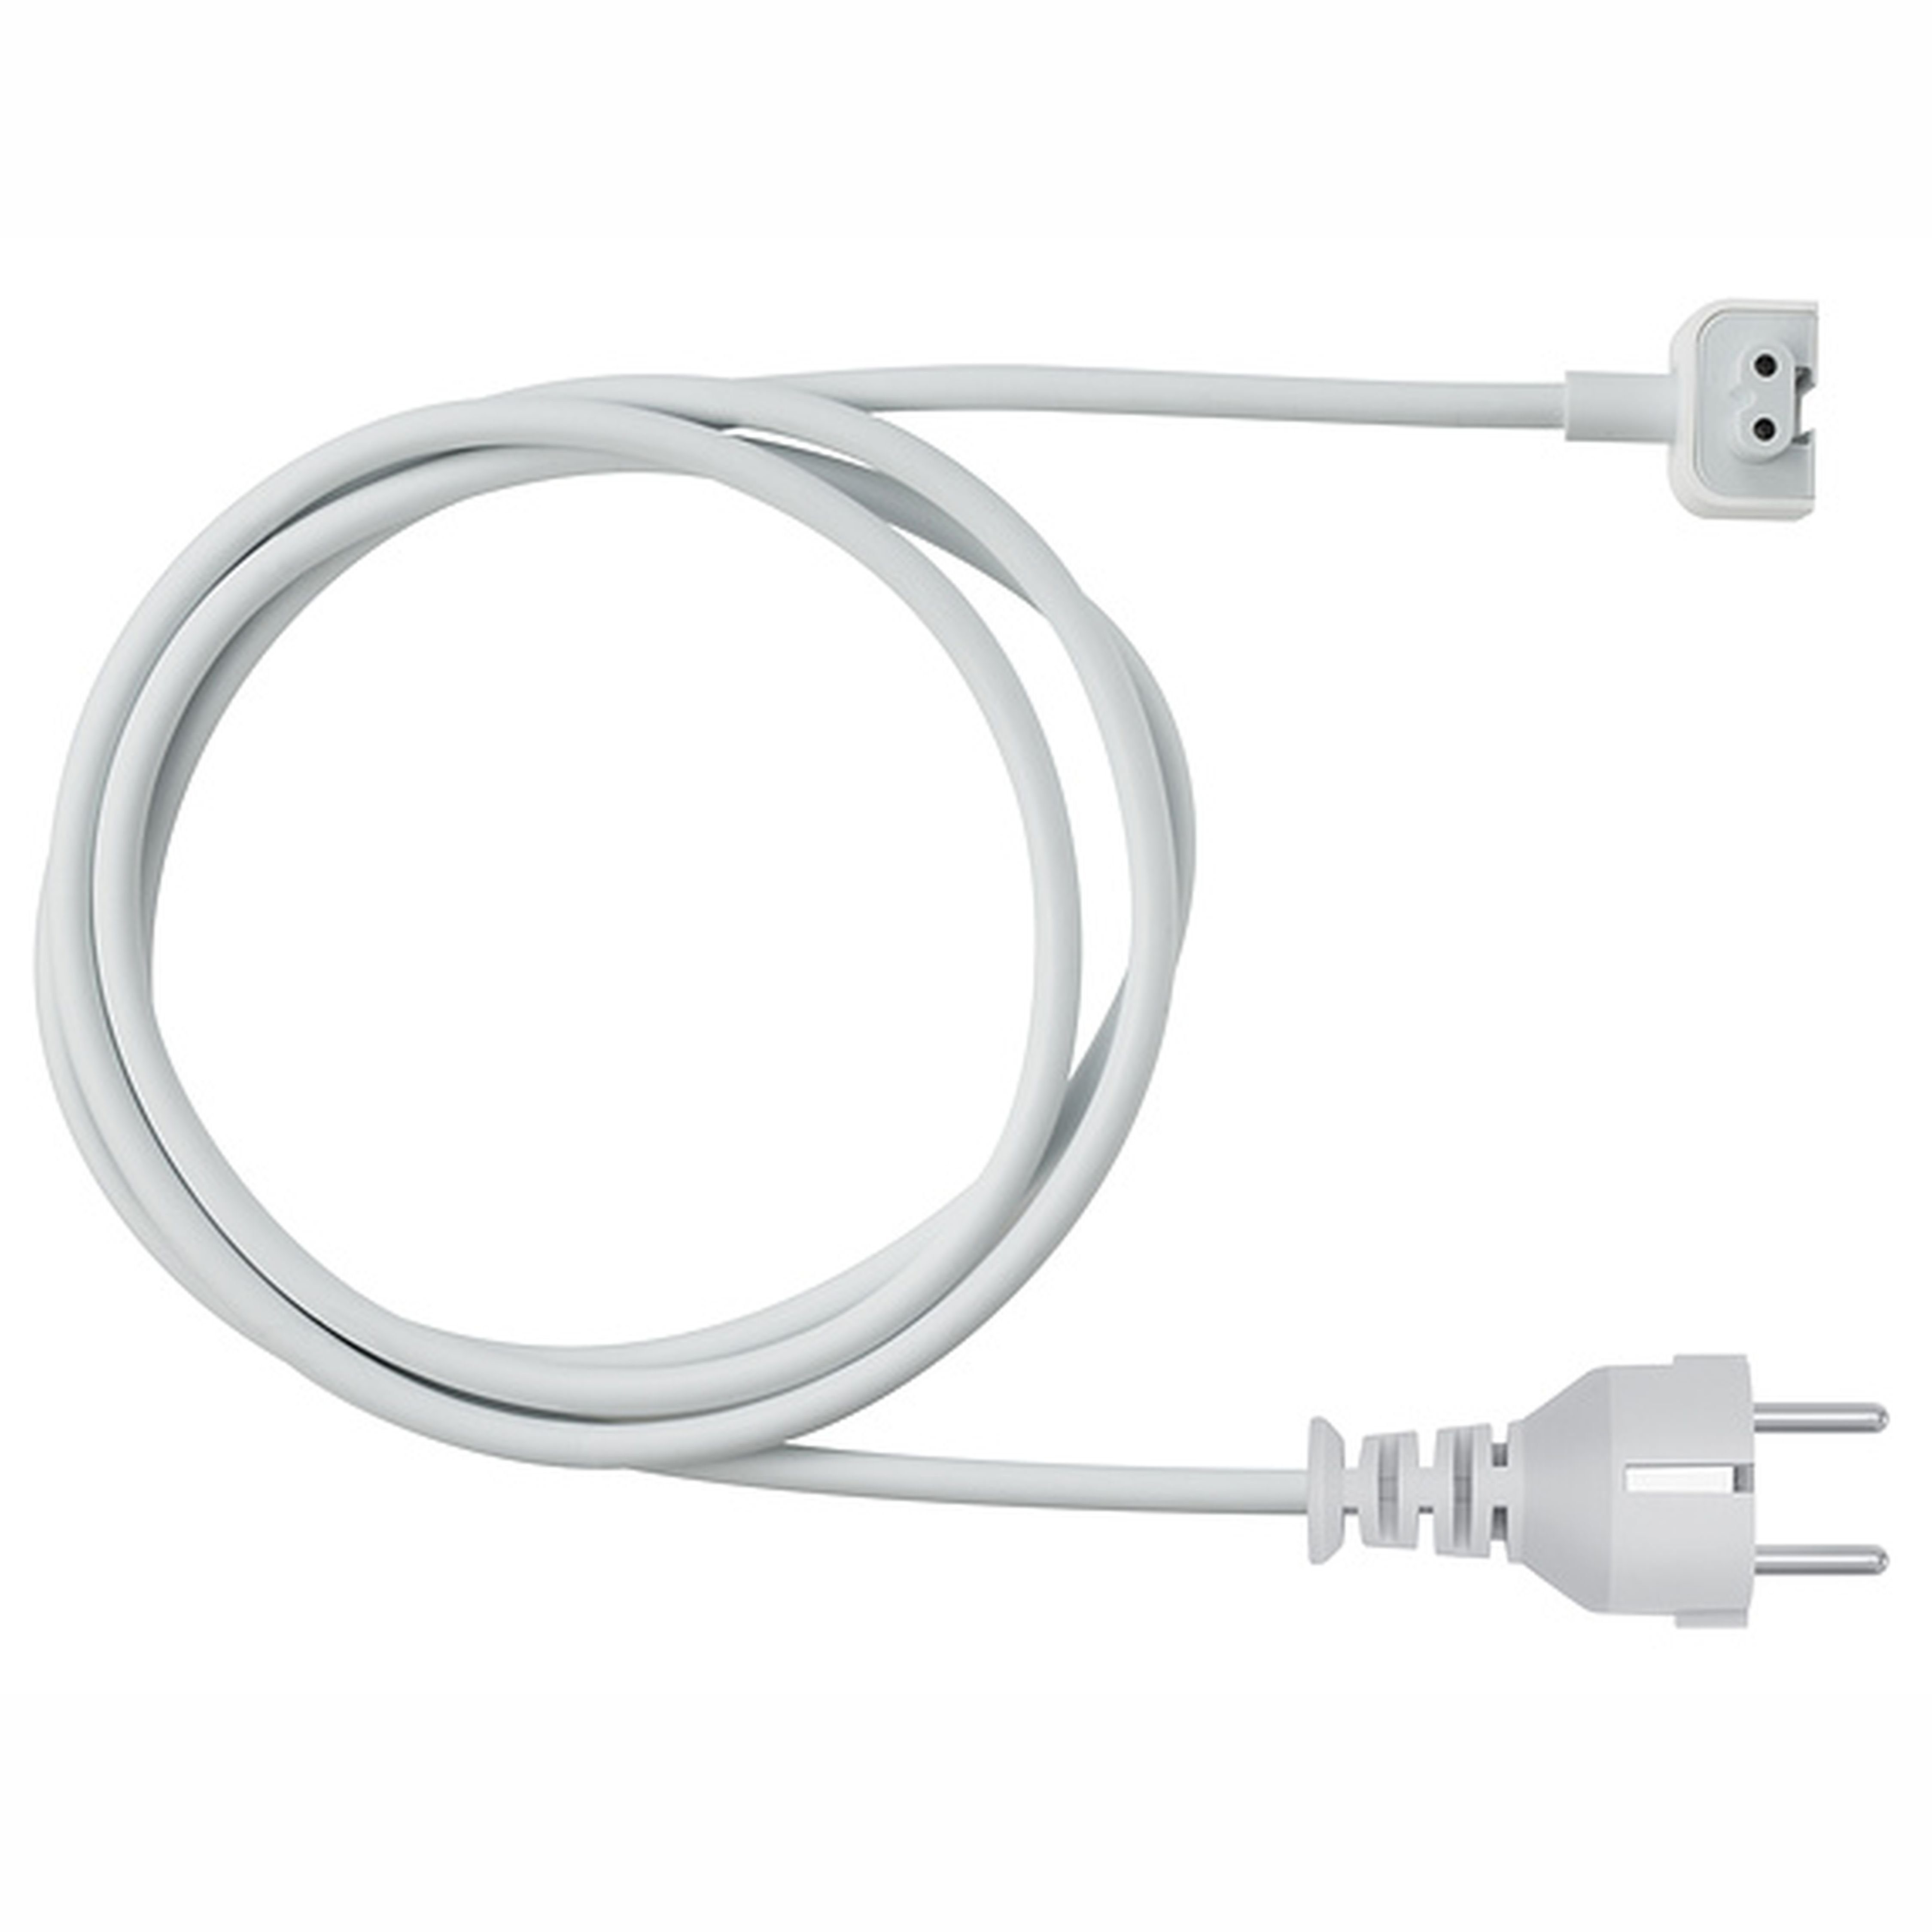 APPLE Adapter » Power Extension Cable (MK122D/A)«